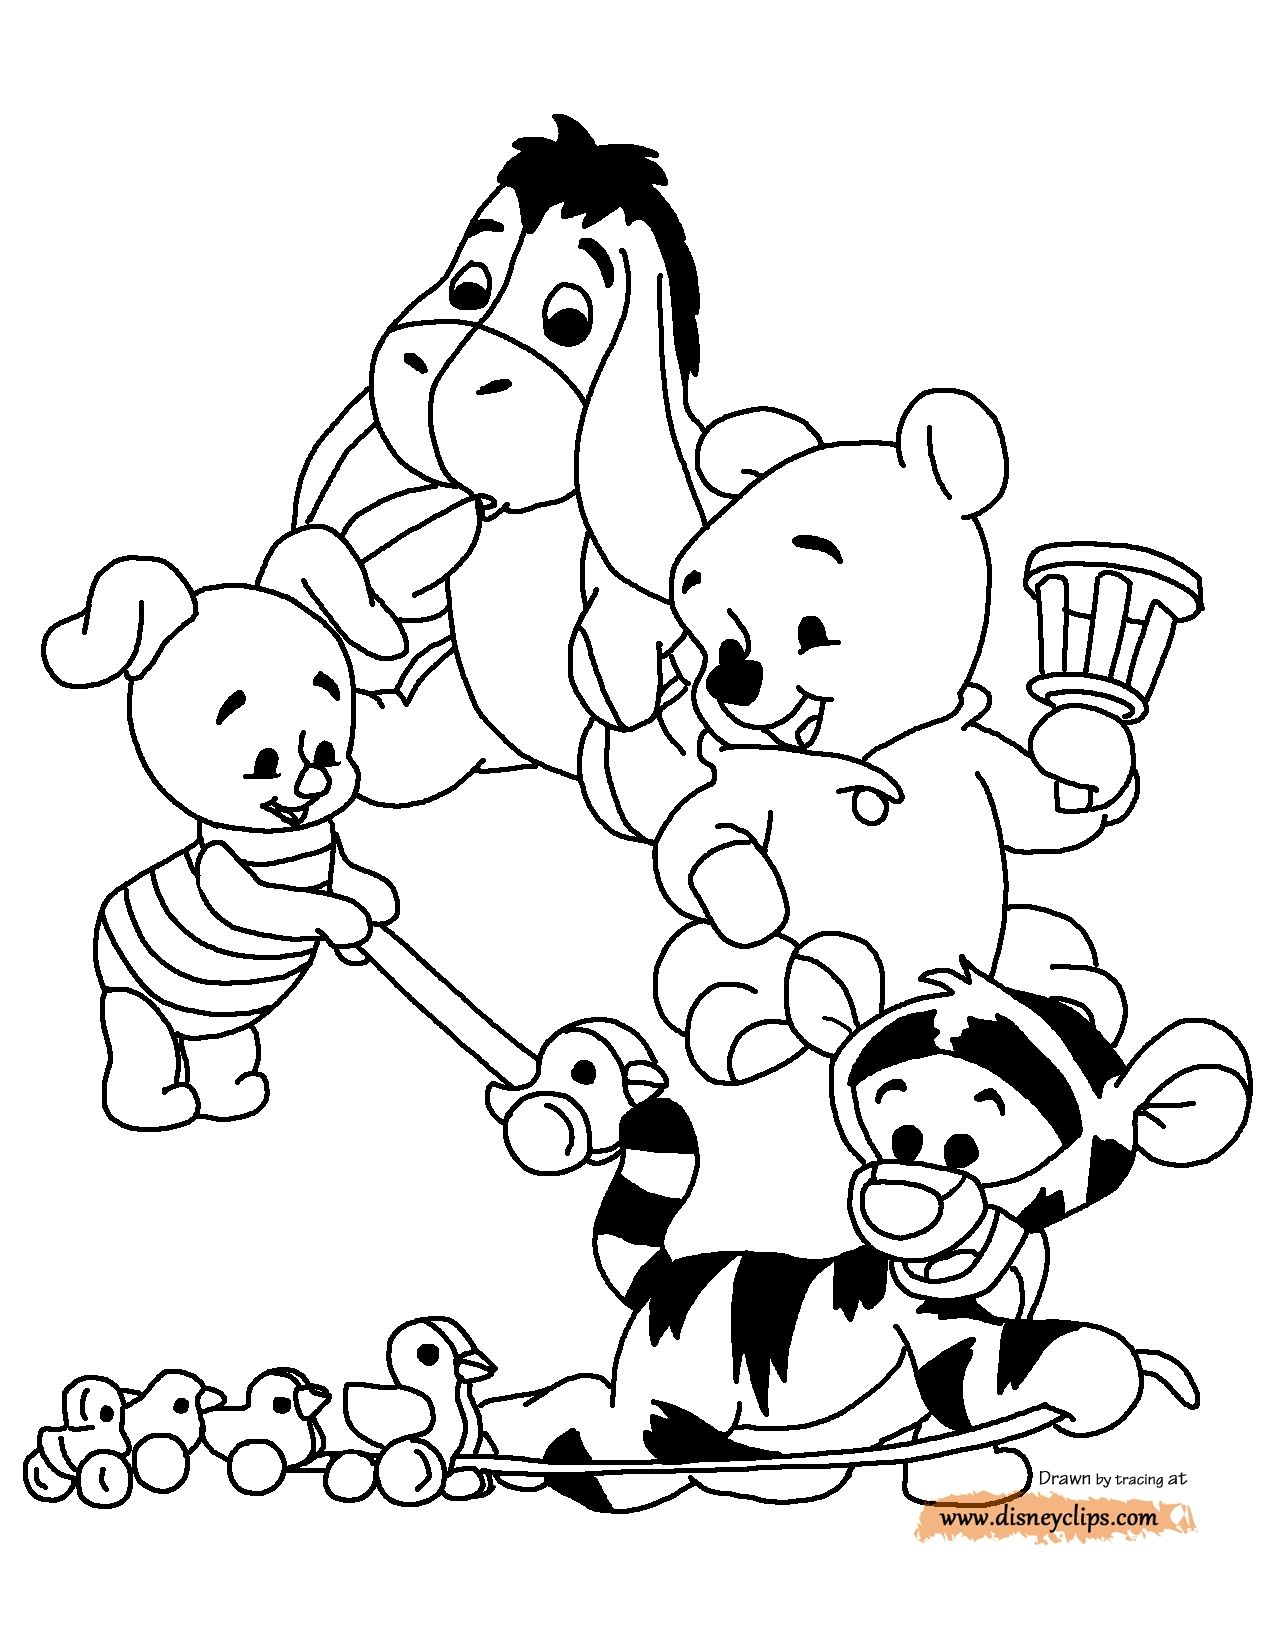 Cute Winnie The Pooh Coloring Pages Baby coloring pages